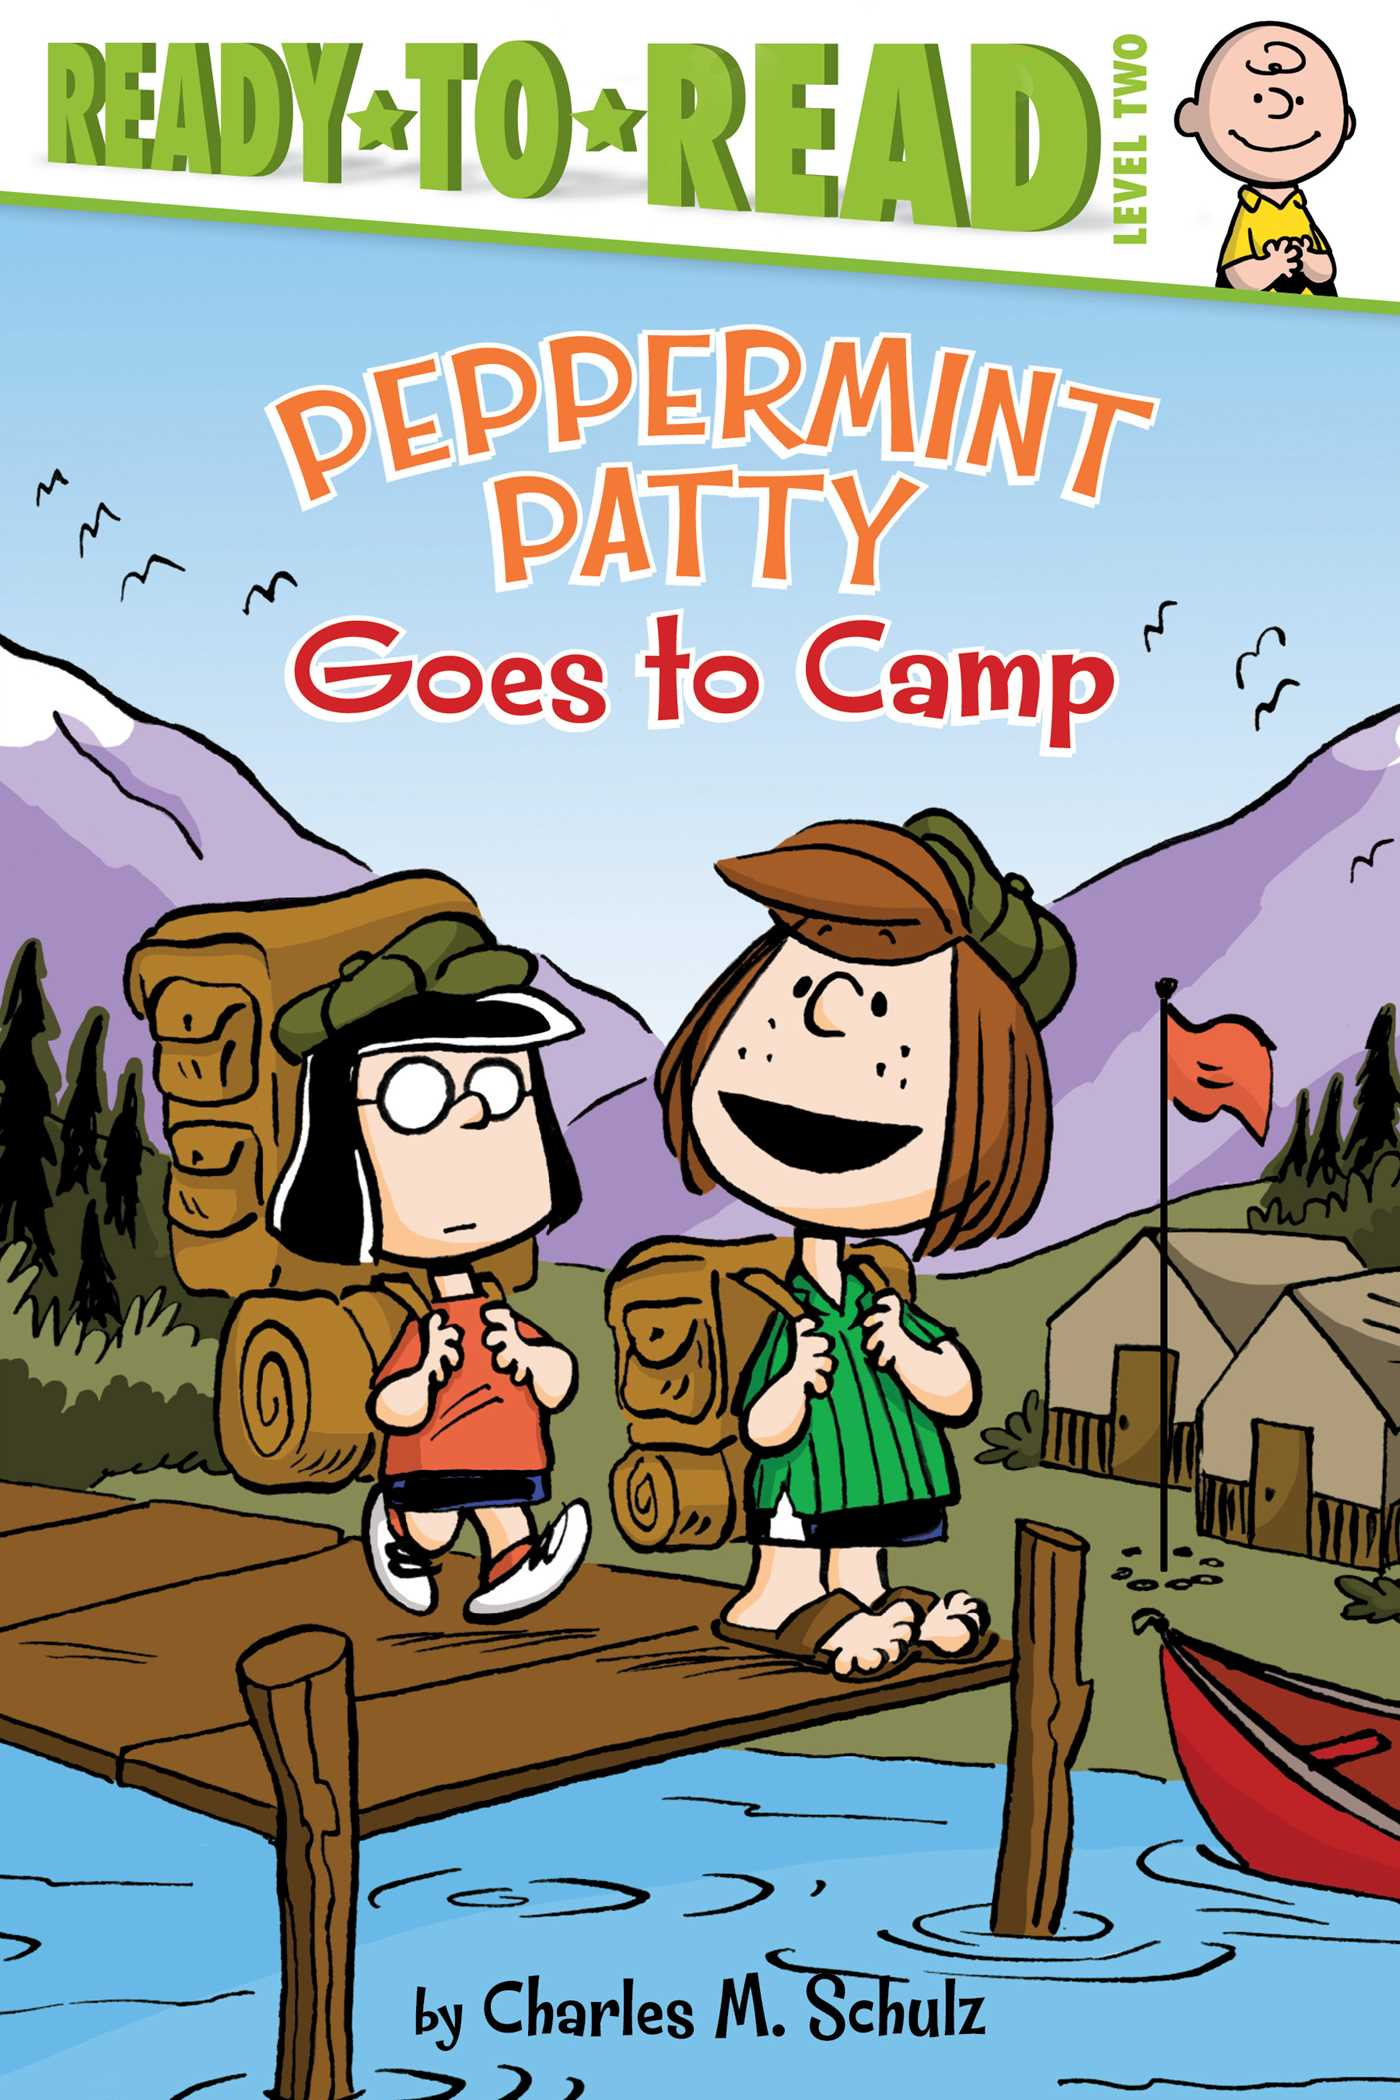 Peppermint patty goes to camp 9781481462624 hr